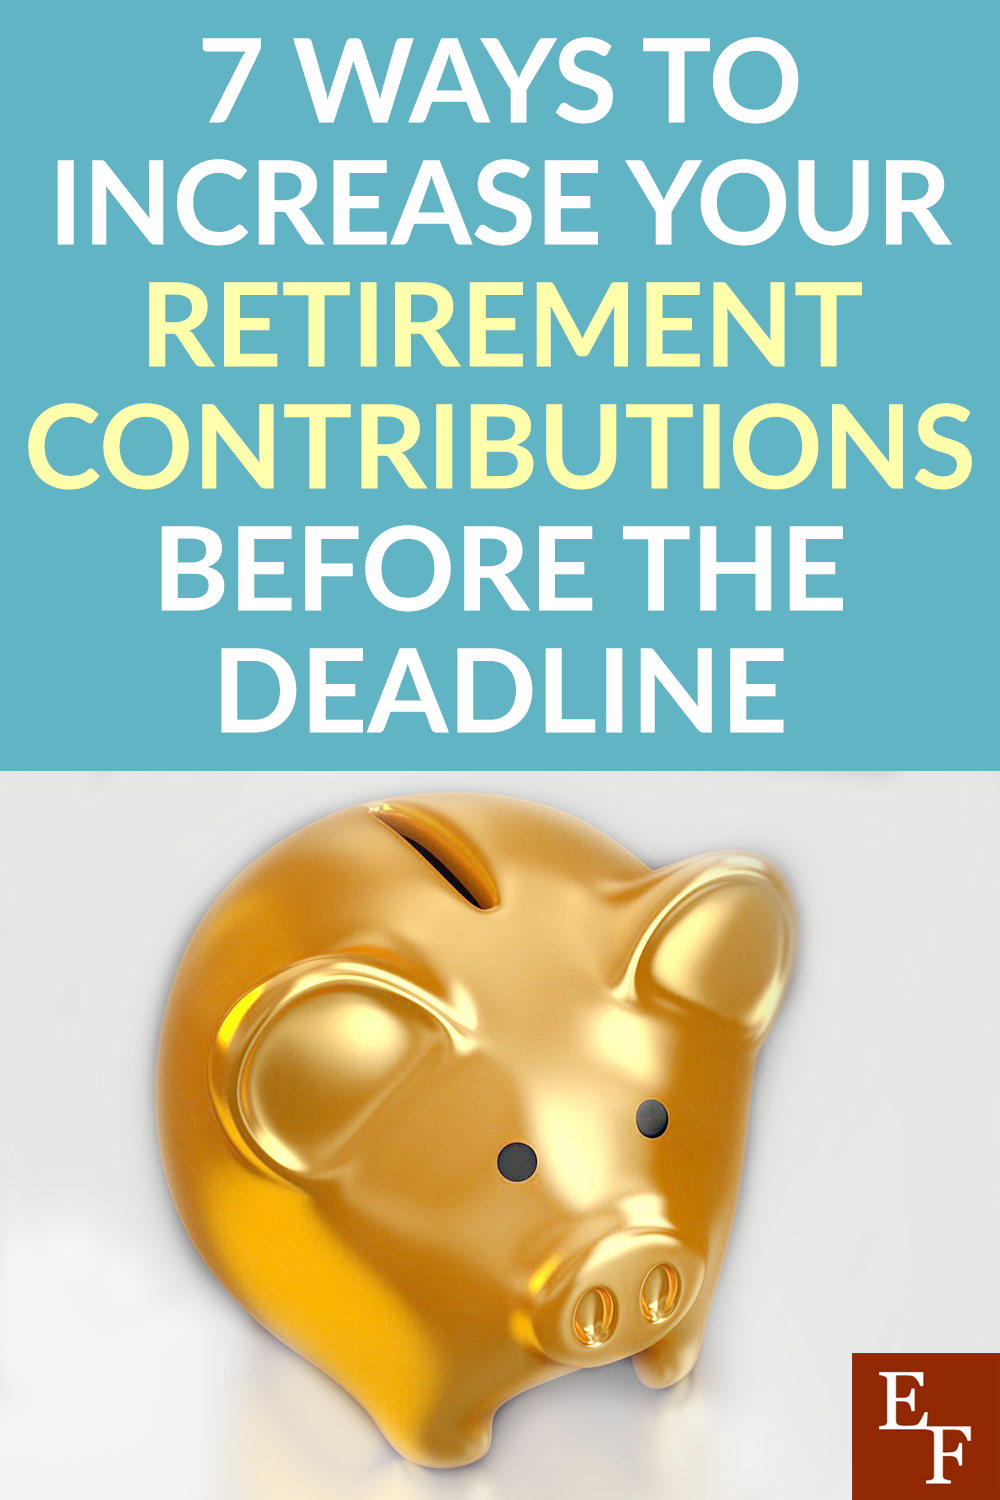 Saving for retirement should be a huge priority on your to do list. Here are 7 clever ways to increase your retirement contributions before the deadline.